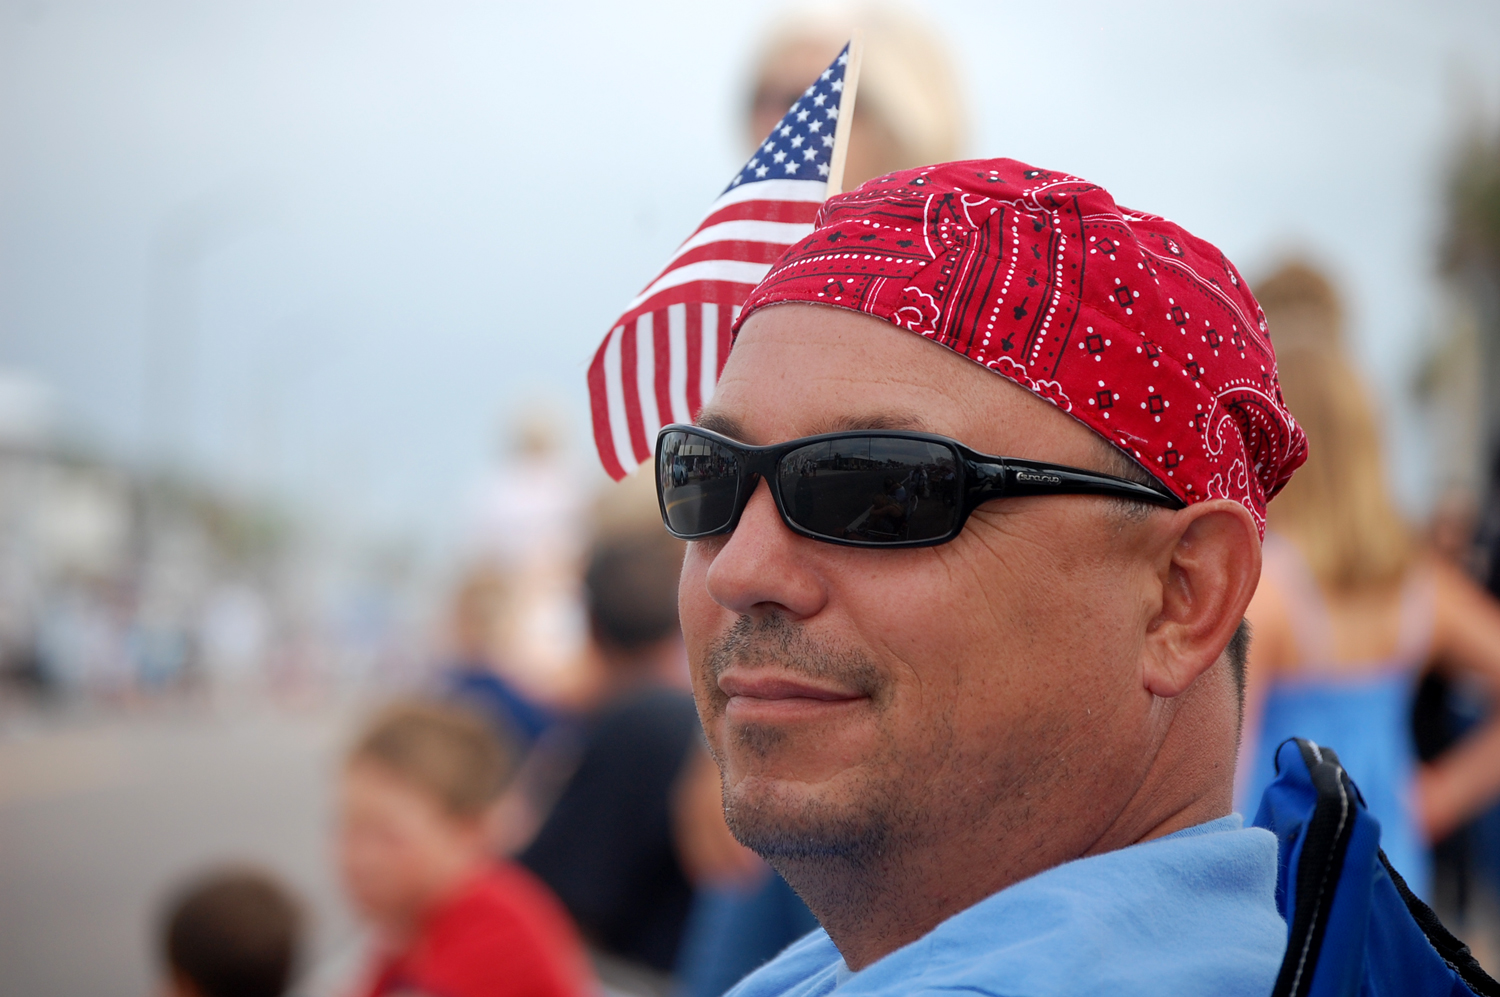 Rain Slams But Doesn't Stop Flagler Beach Parade - Flagler Beach's ...